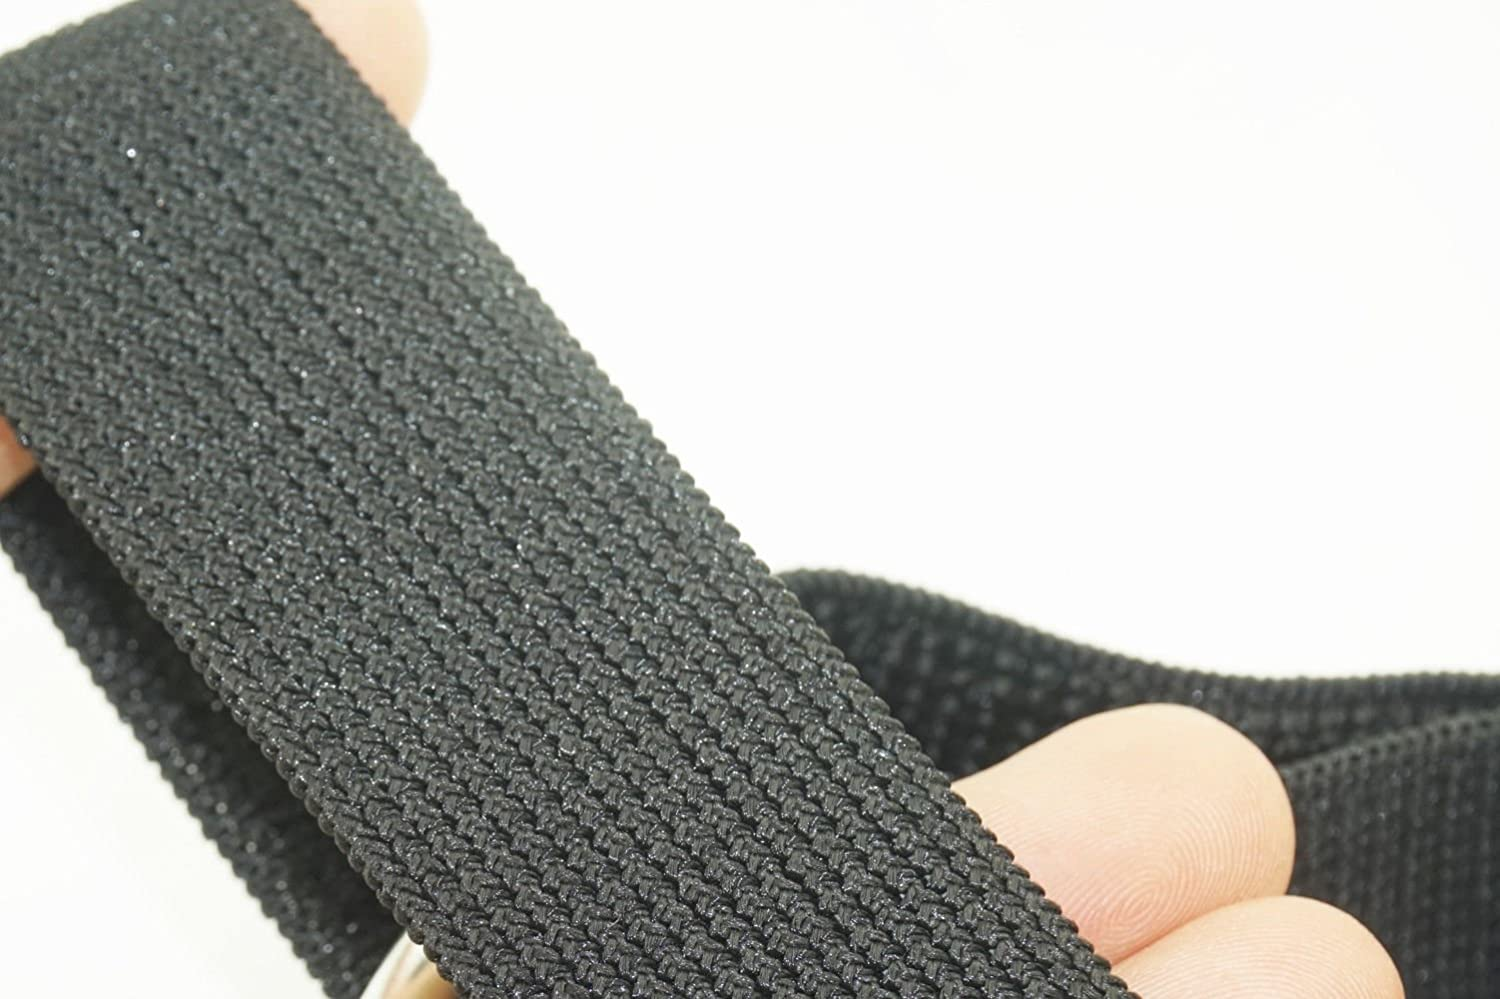 Ltd. Shenzhen LangTao Bang International Trade Co. - Multi-purpose Extra Strong Elastic Glove and Mitten Clips Super Tight Grip! pack of 4 Perfect for Skiing and Snowboarding